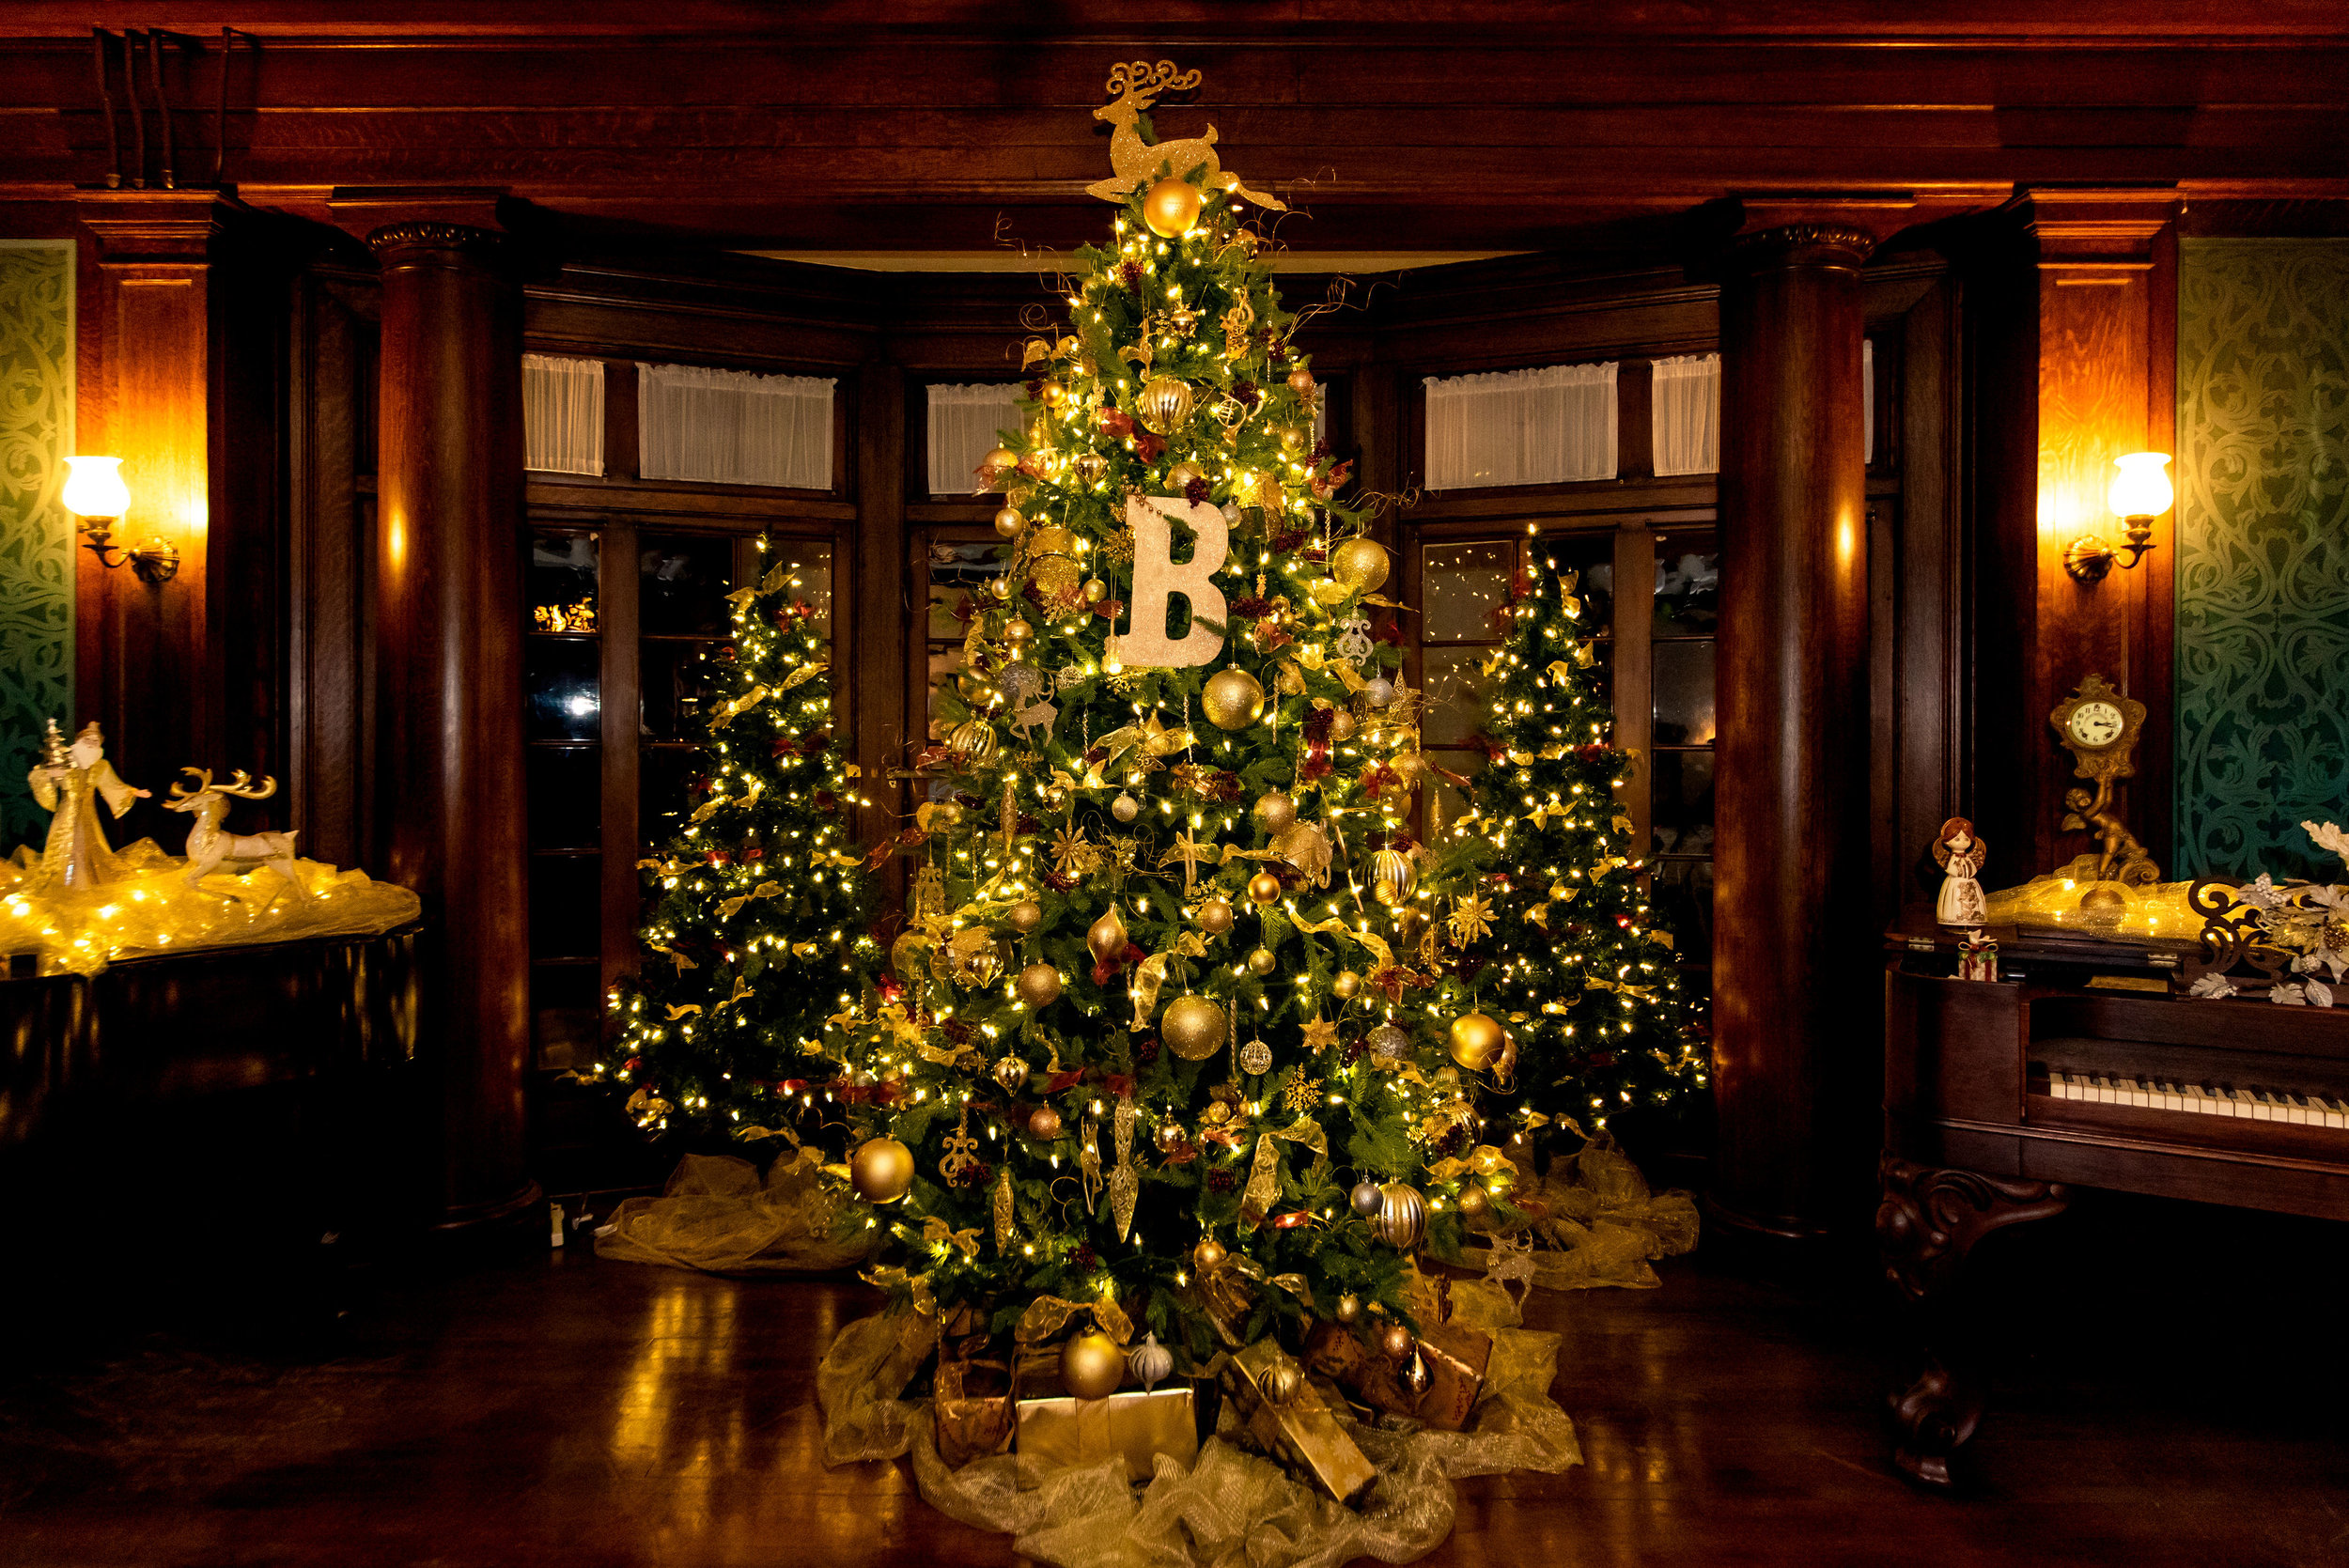 cs_BrownMansion-ChristmasPhotos-2 (1).jpg